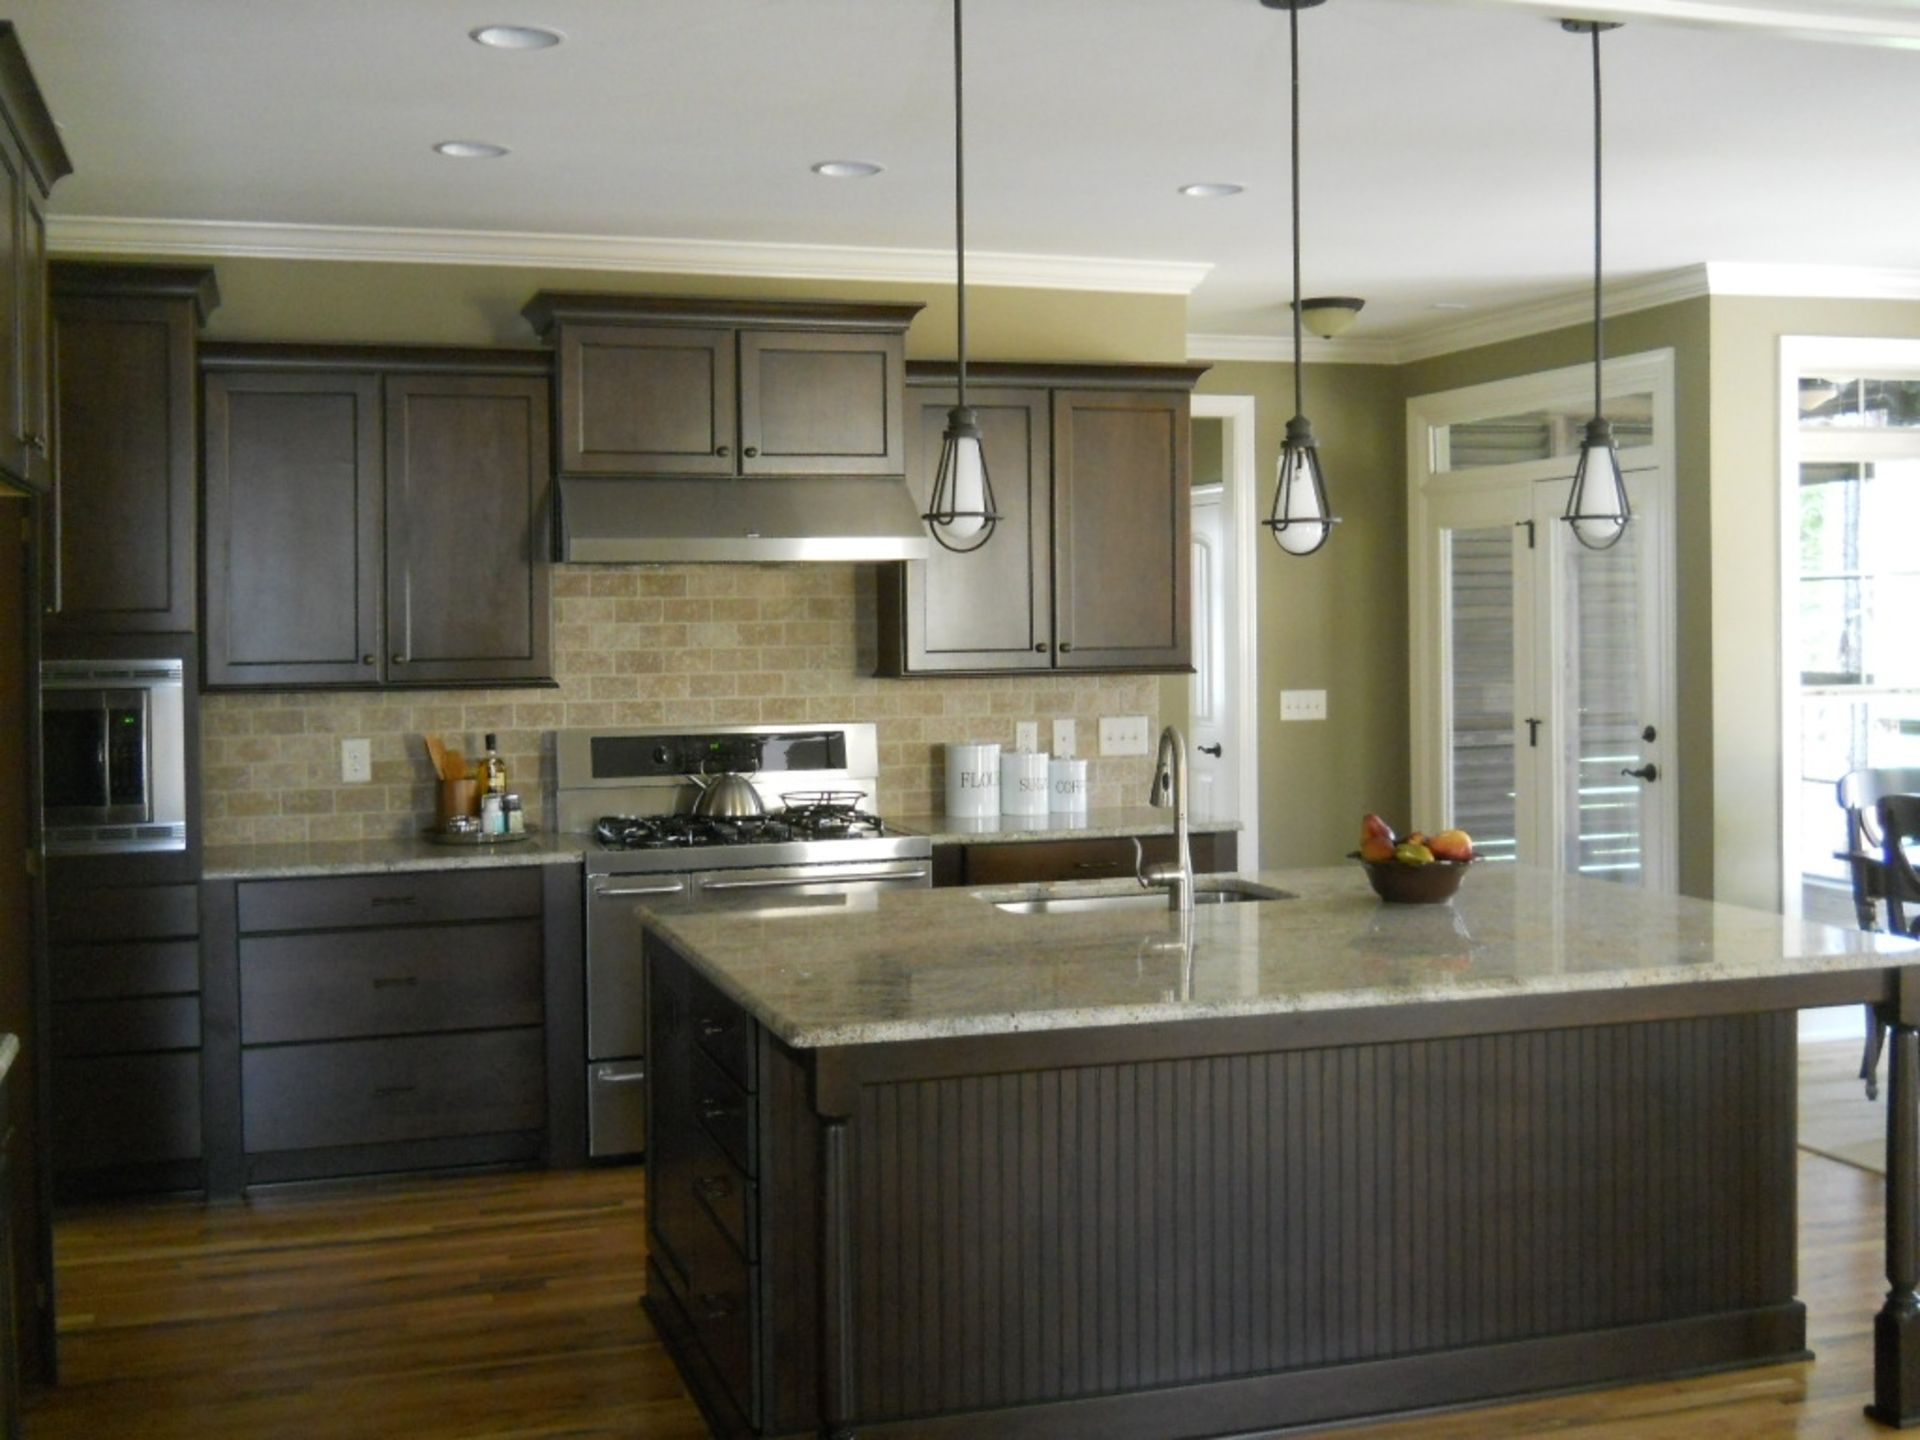 New Kitchen Dark Cabinets Change The Look Of Your House To Be Like A New Home Interior